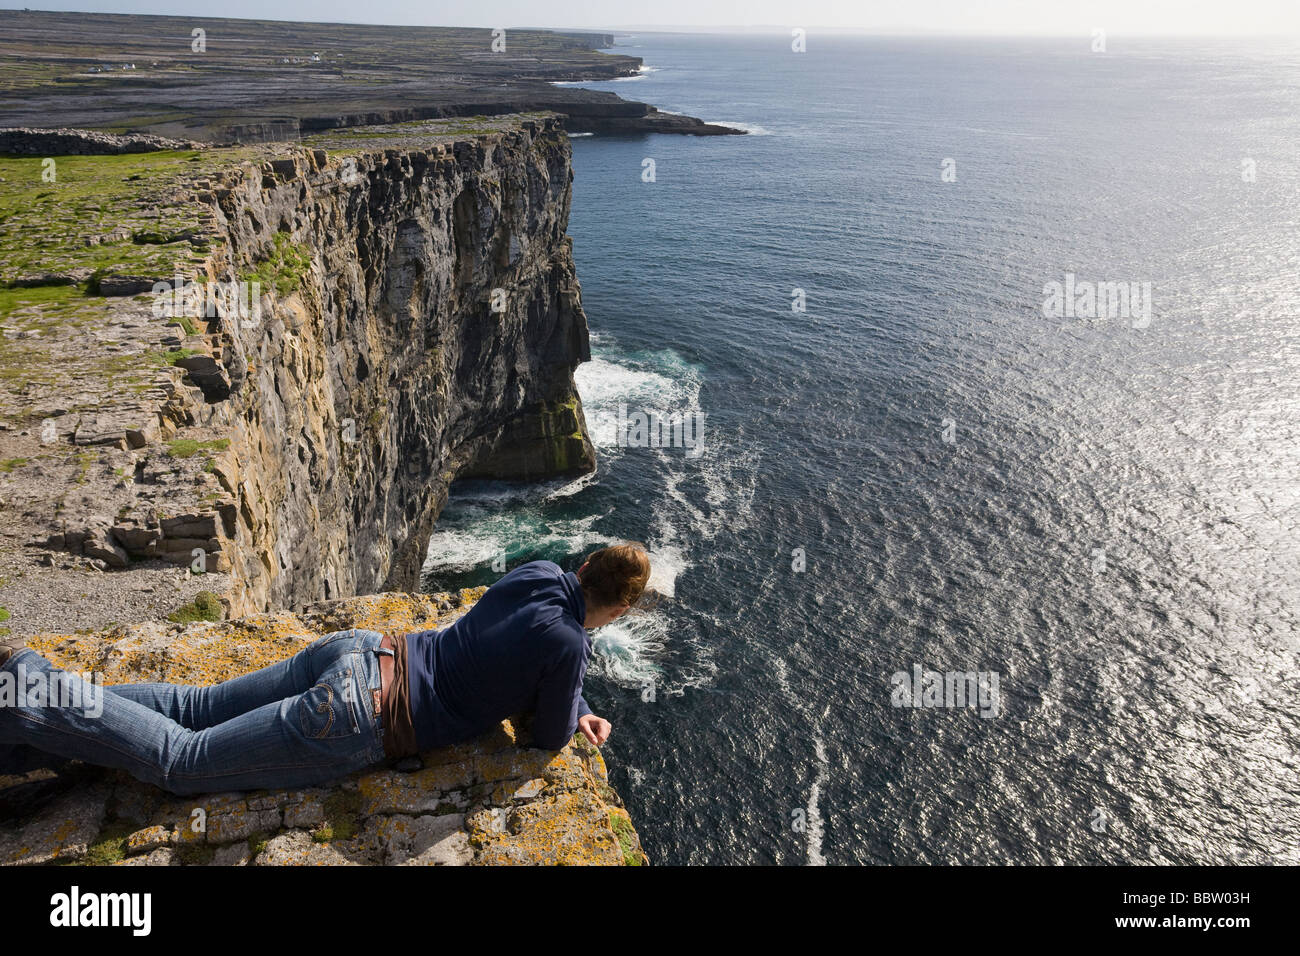 High View, Crashing Waves. A young woman leans over the 100 meter cliff at Dun Angus to take in the spectacular - Stock Image